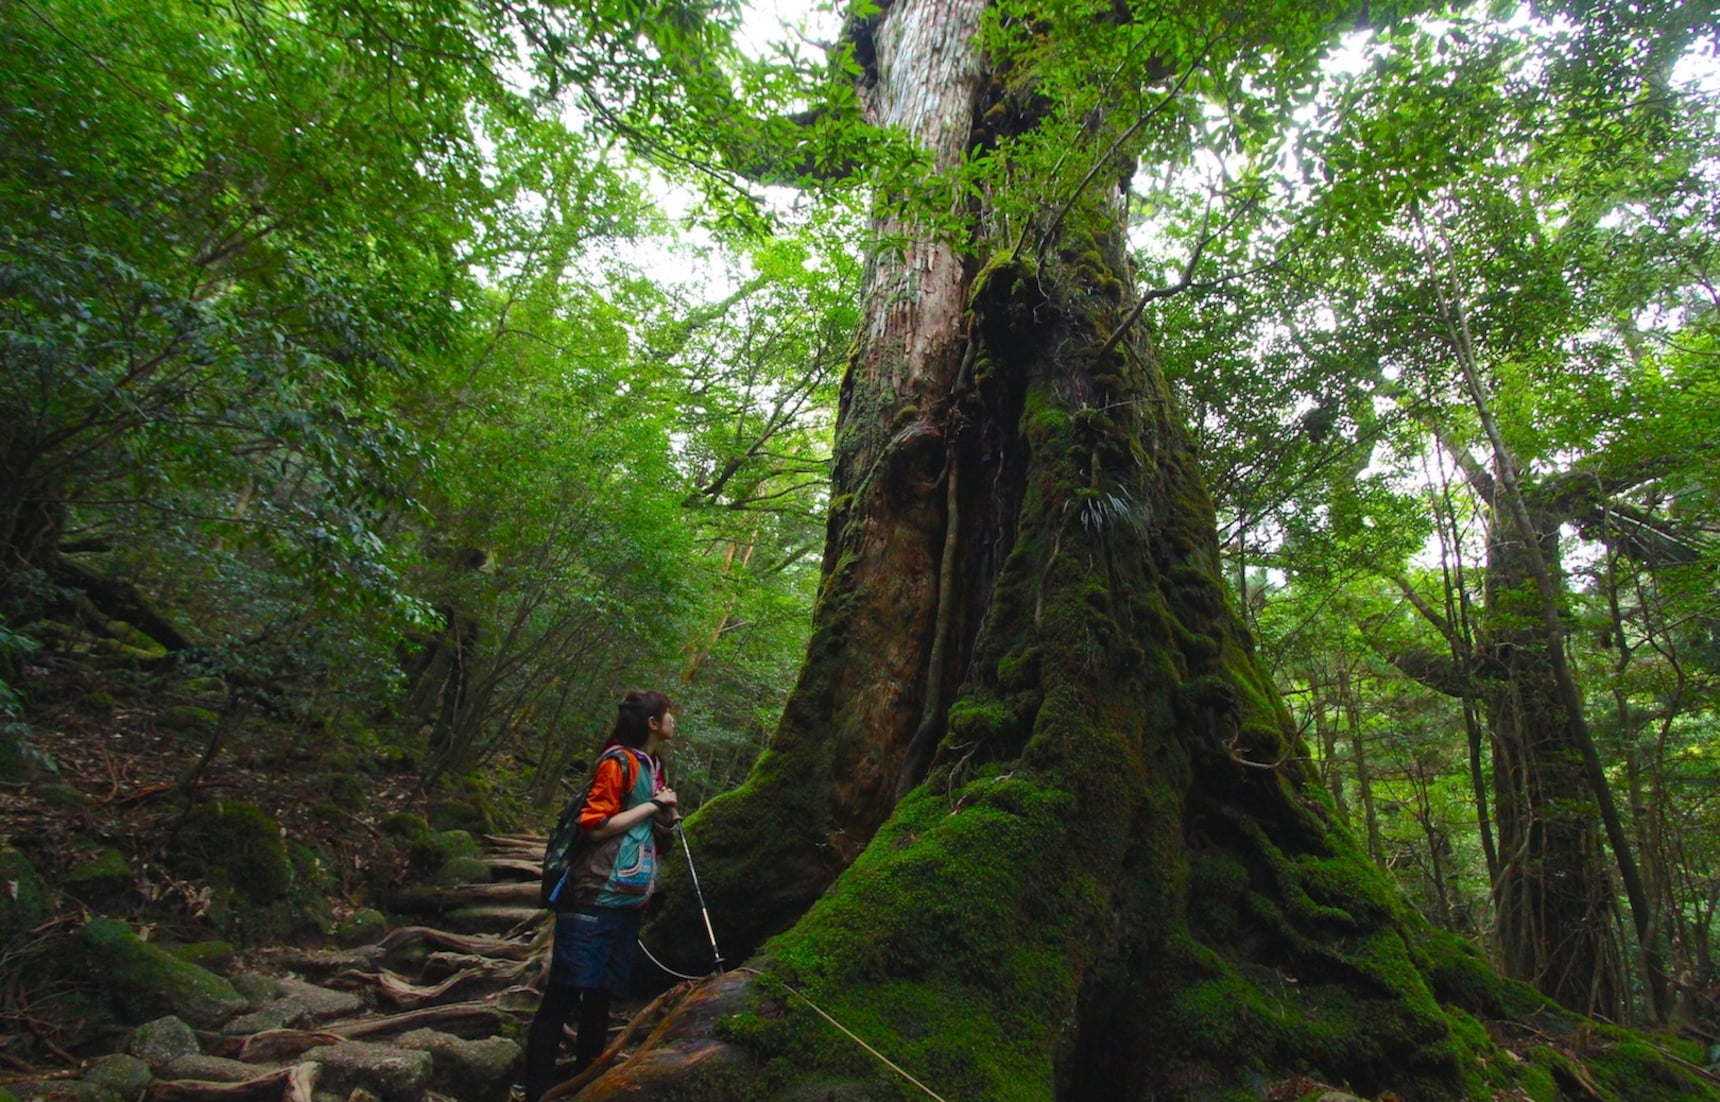 Yakushima: Island of Thousand-Year-Old Cedars